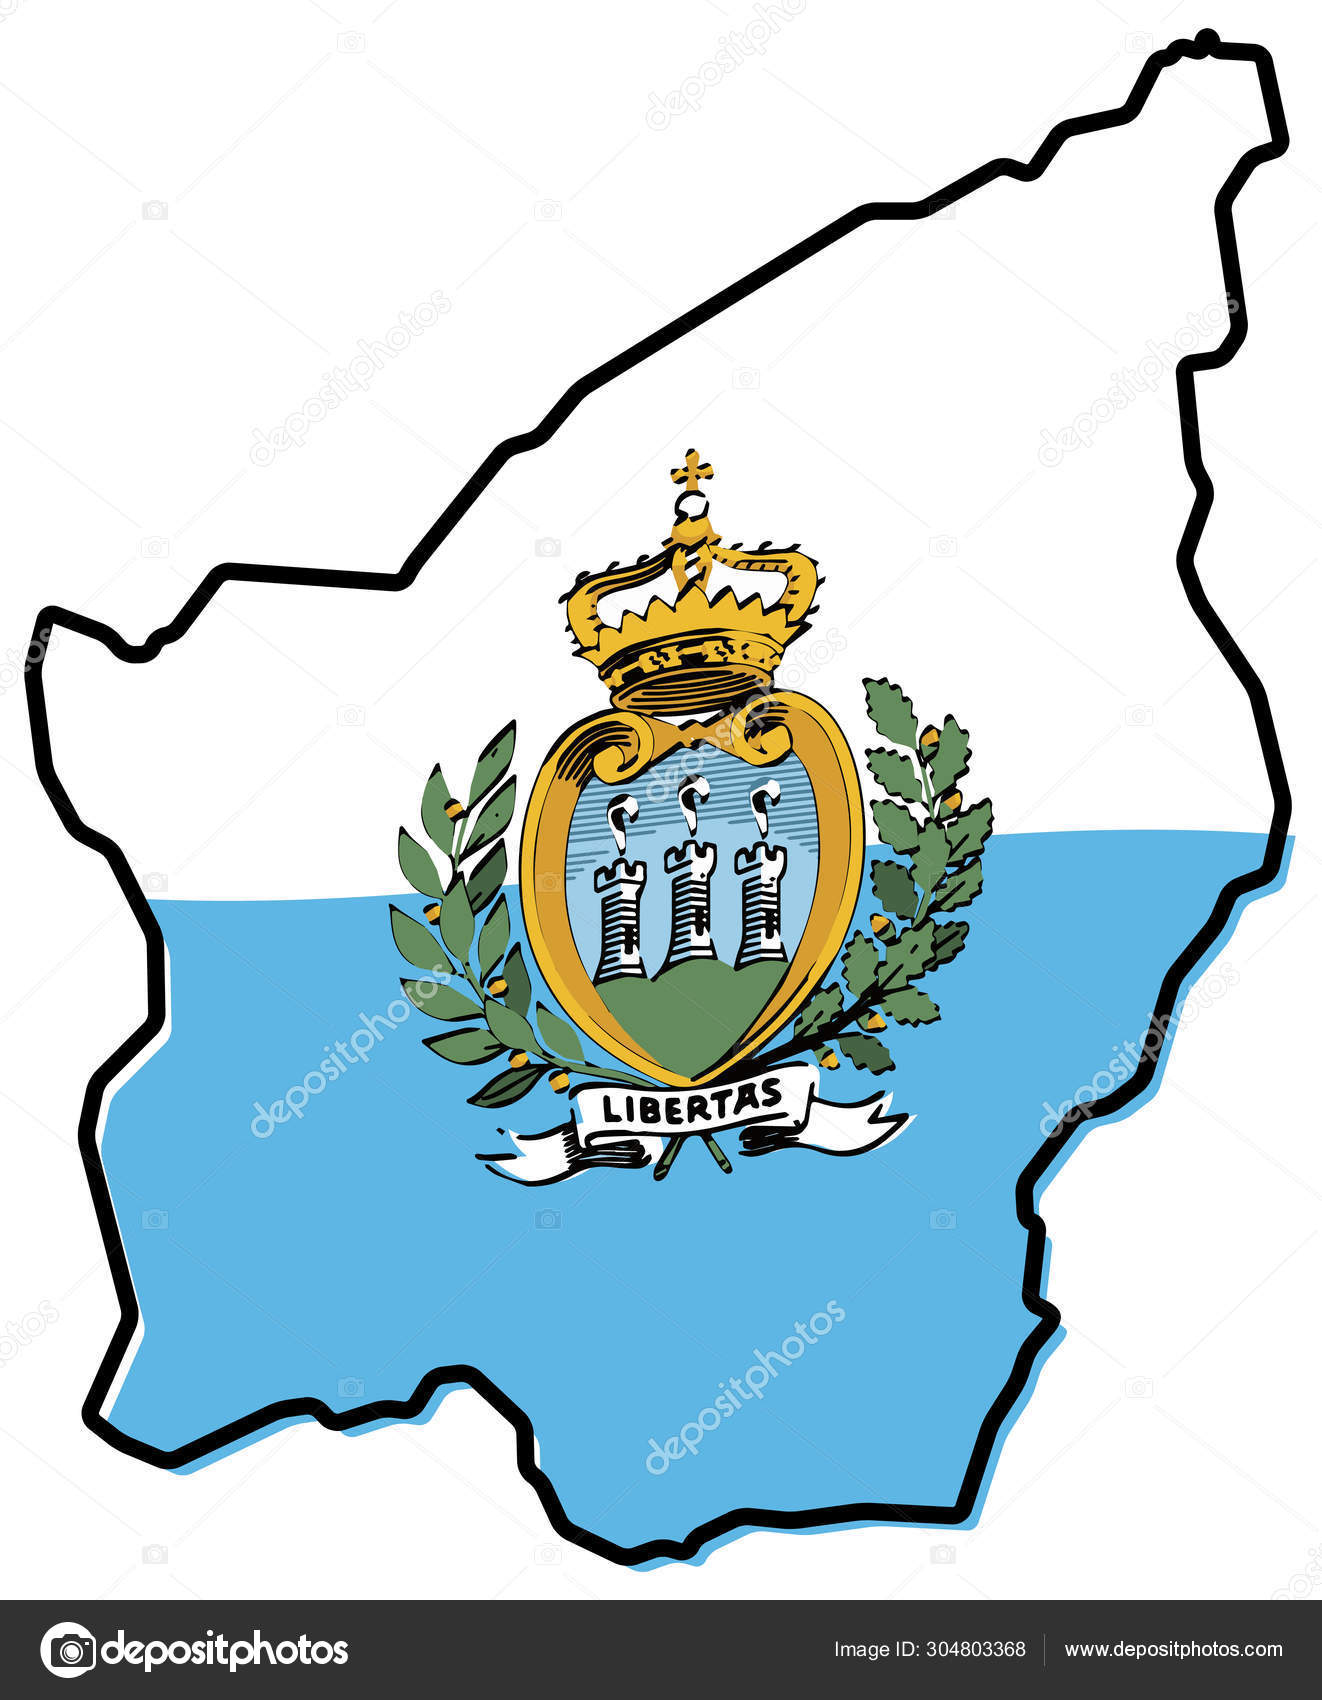 Simplified map of San Marino outline, with slightly bent